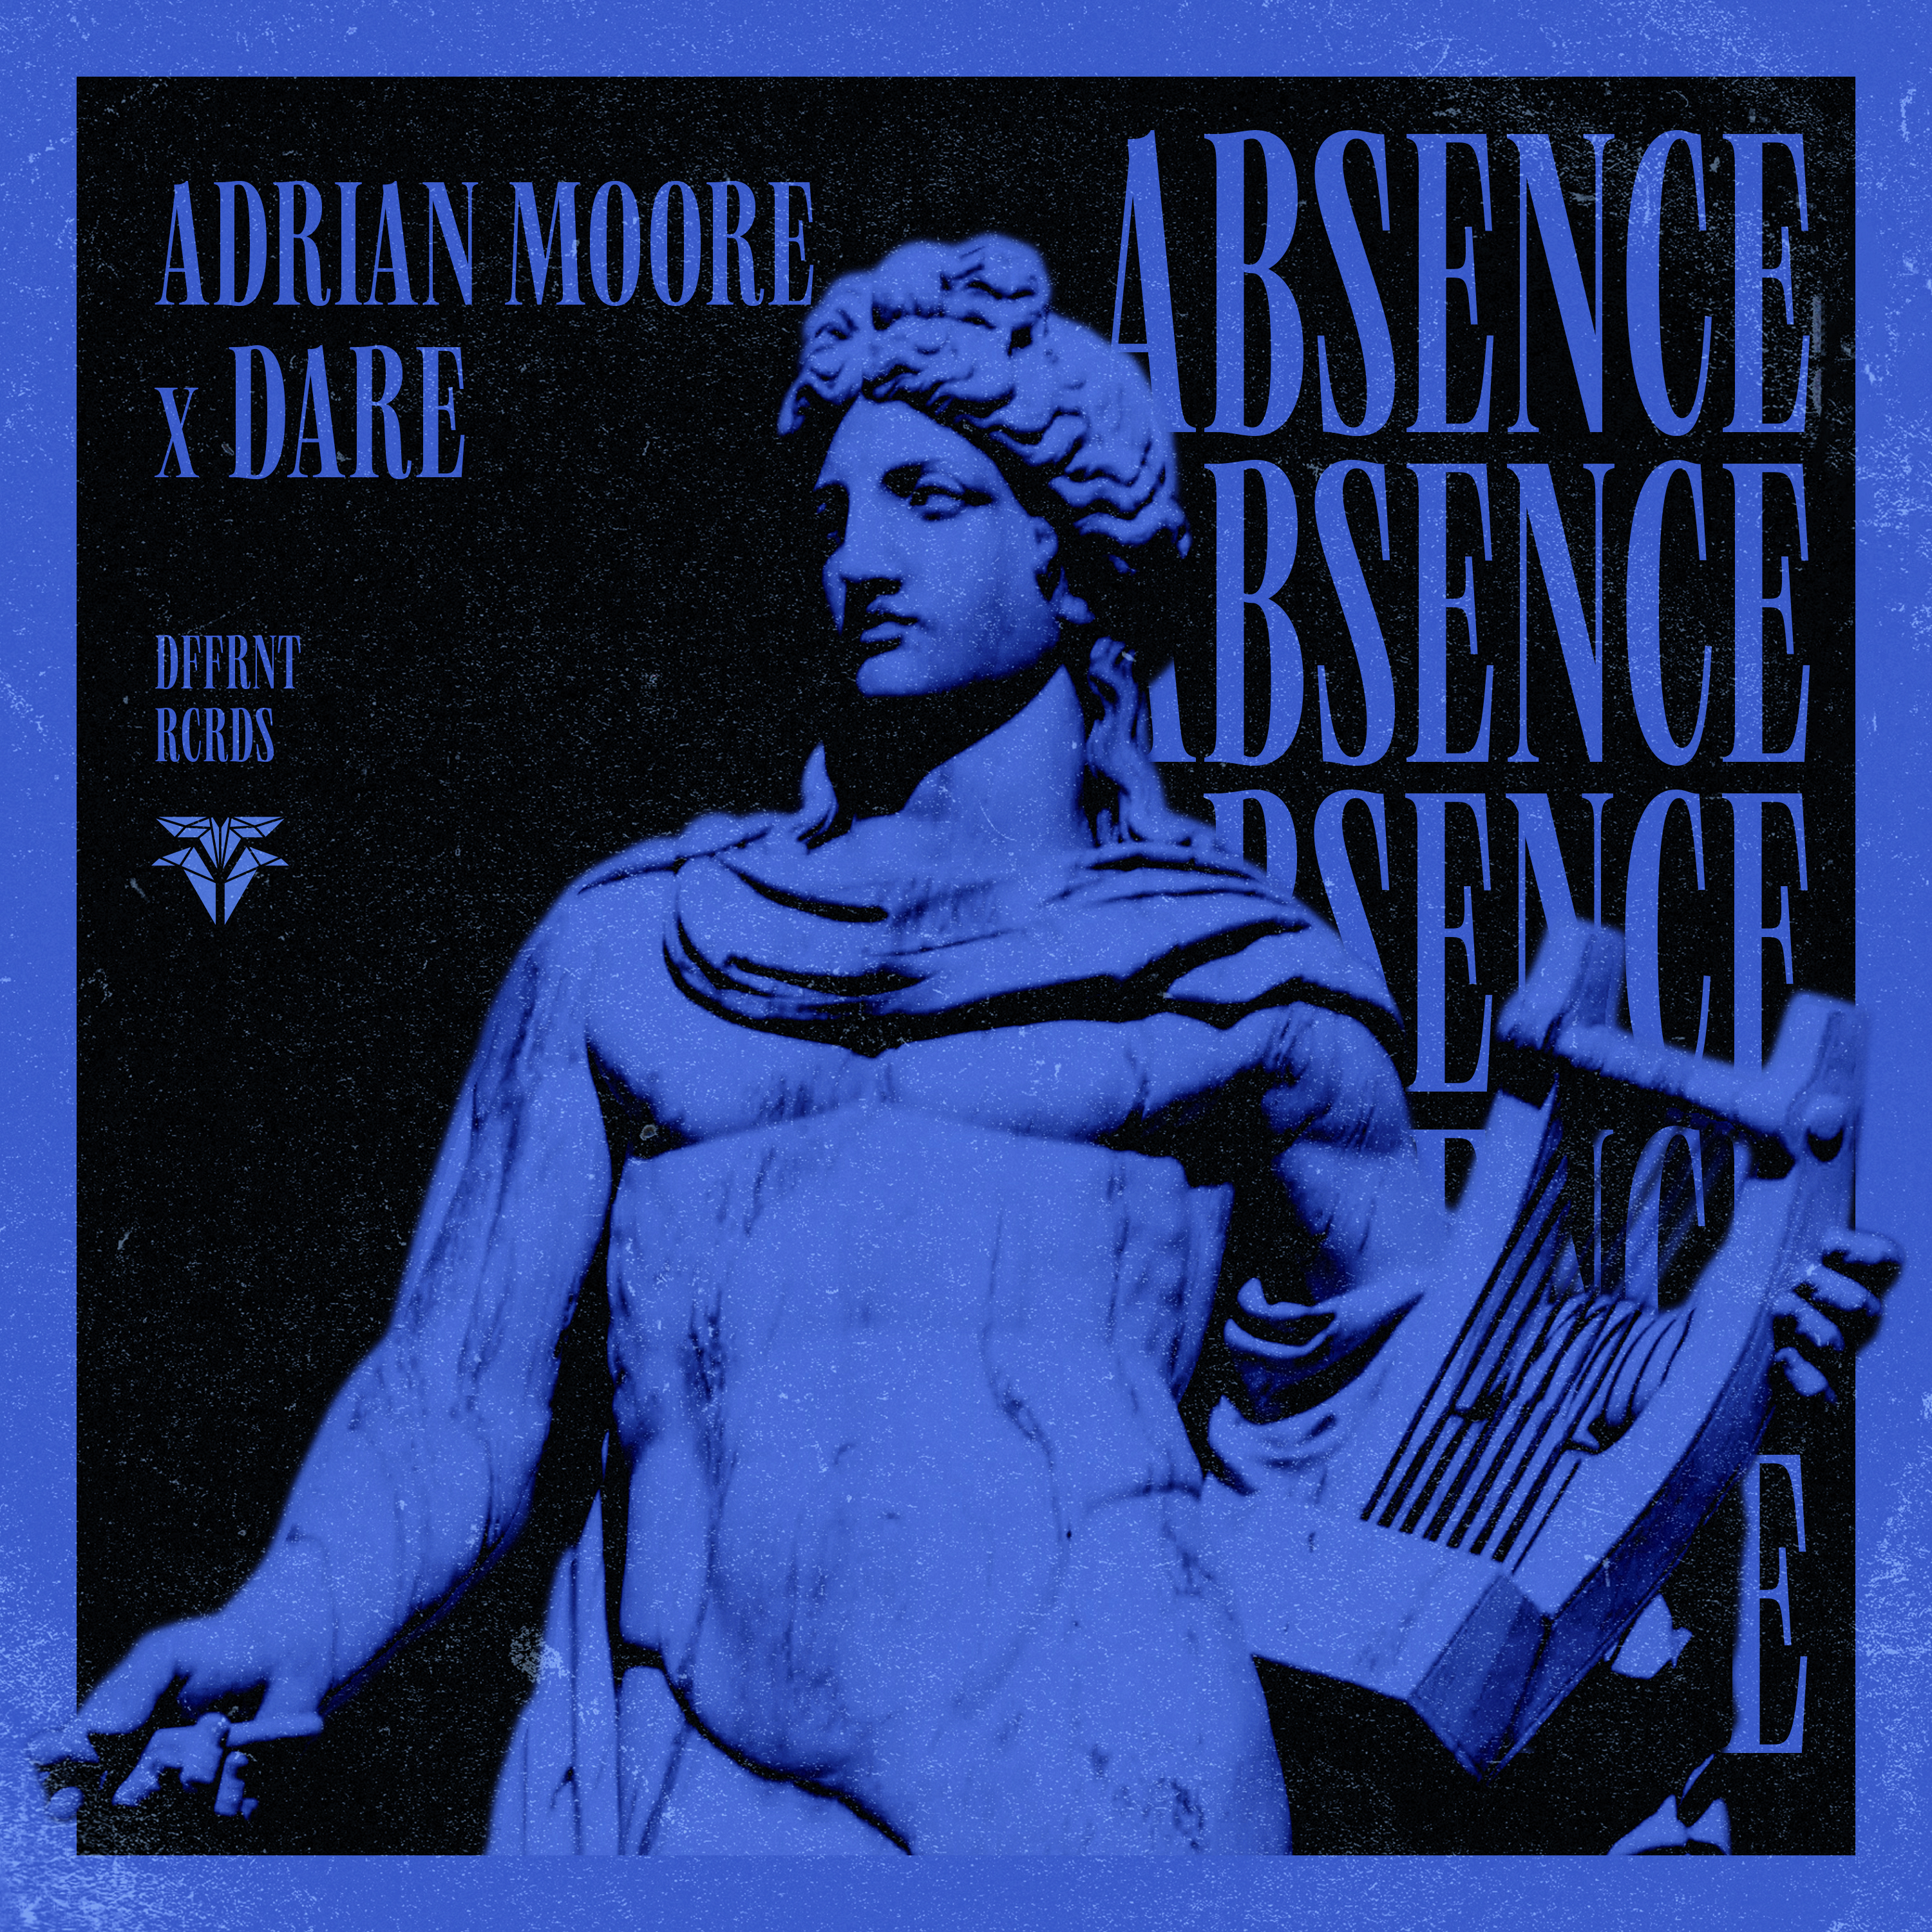 Adrian Moore x DARE - Absence